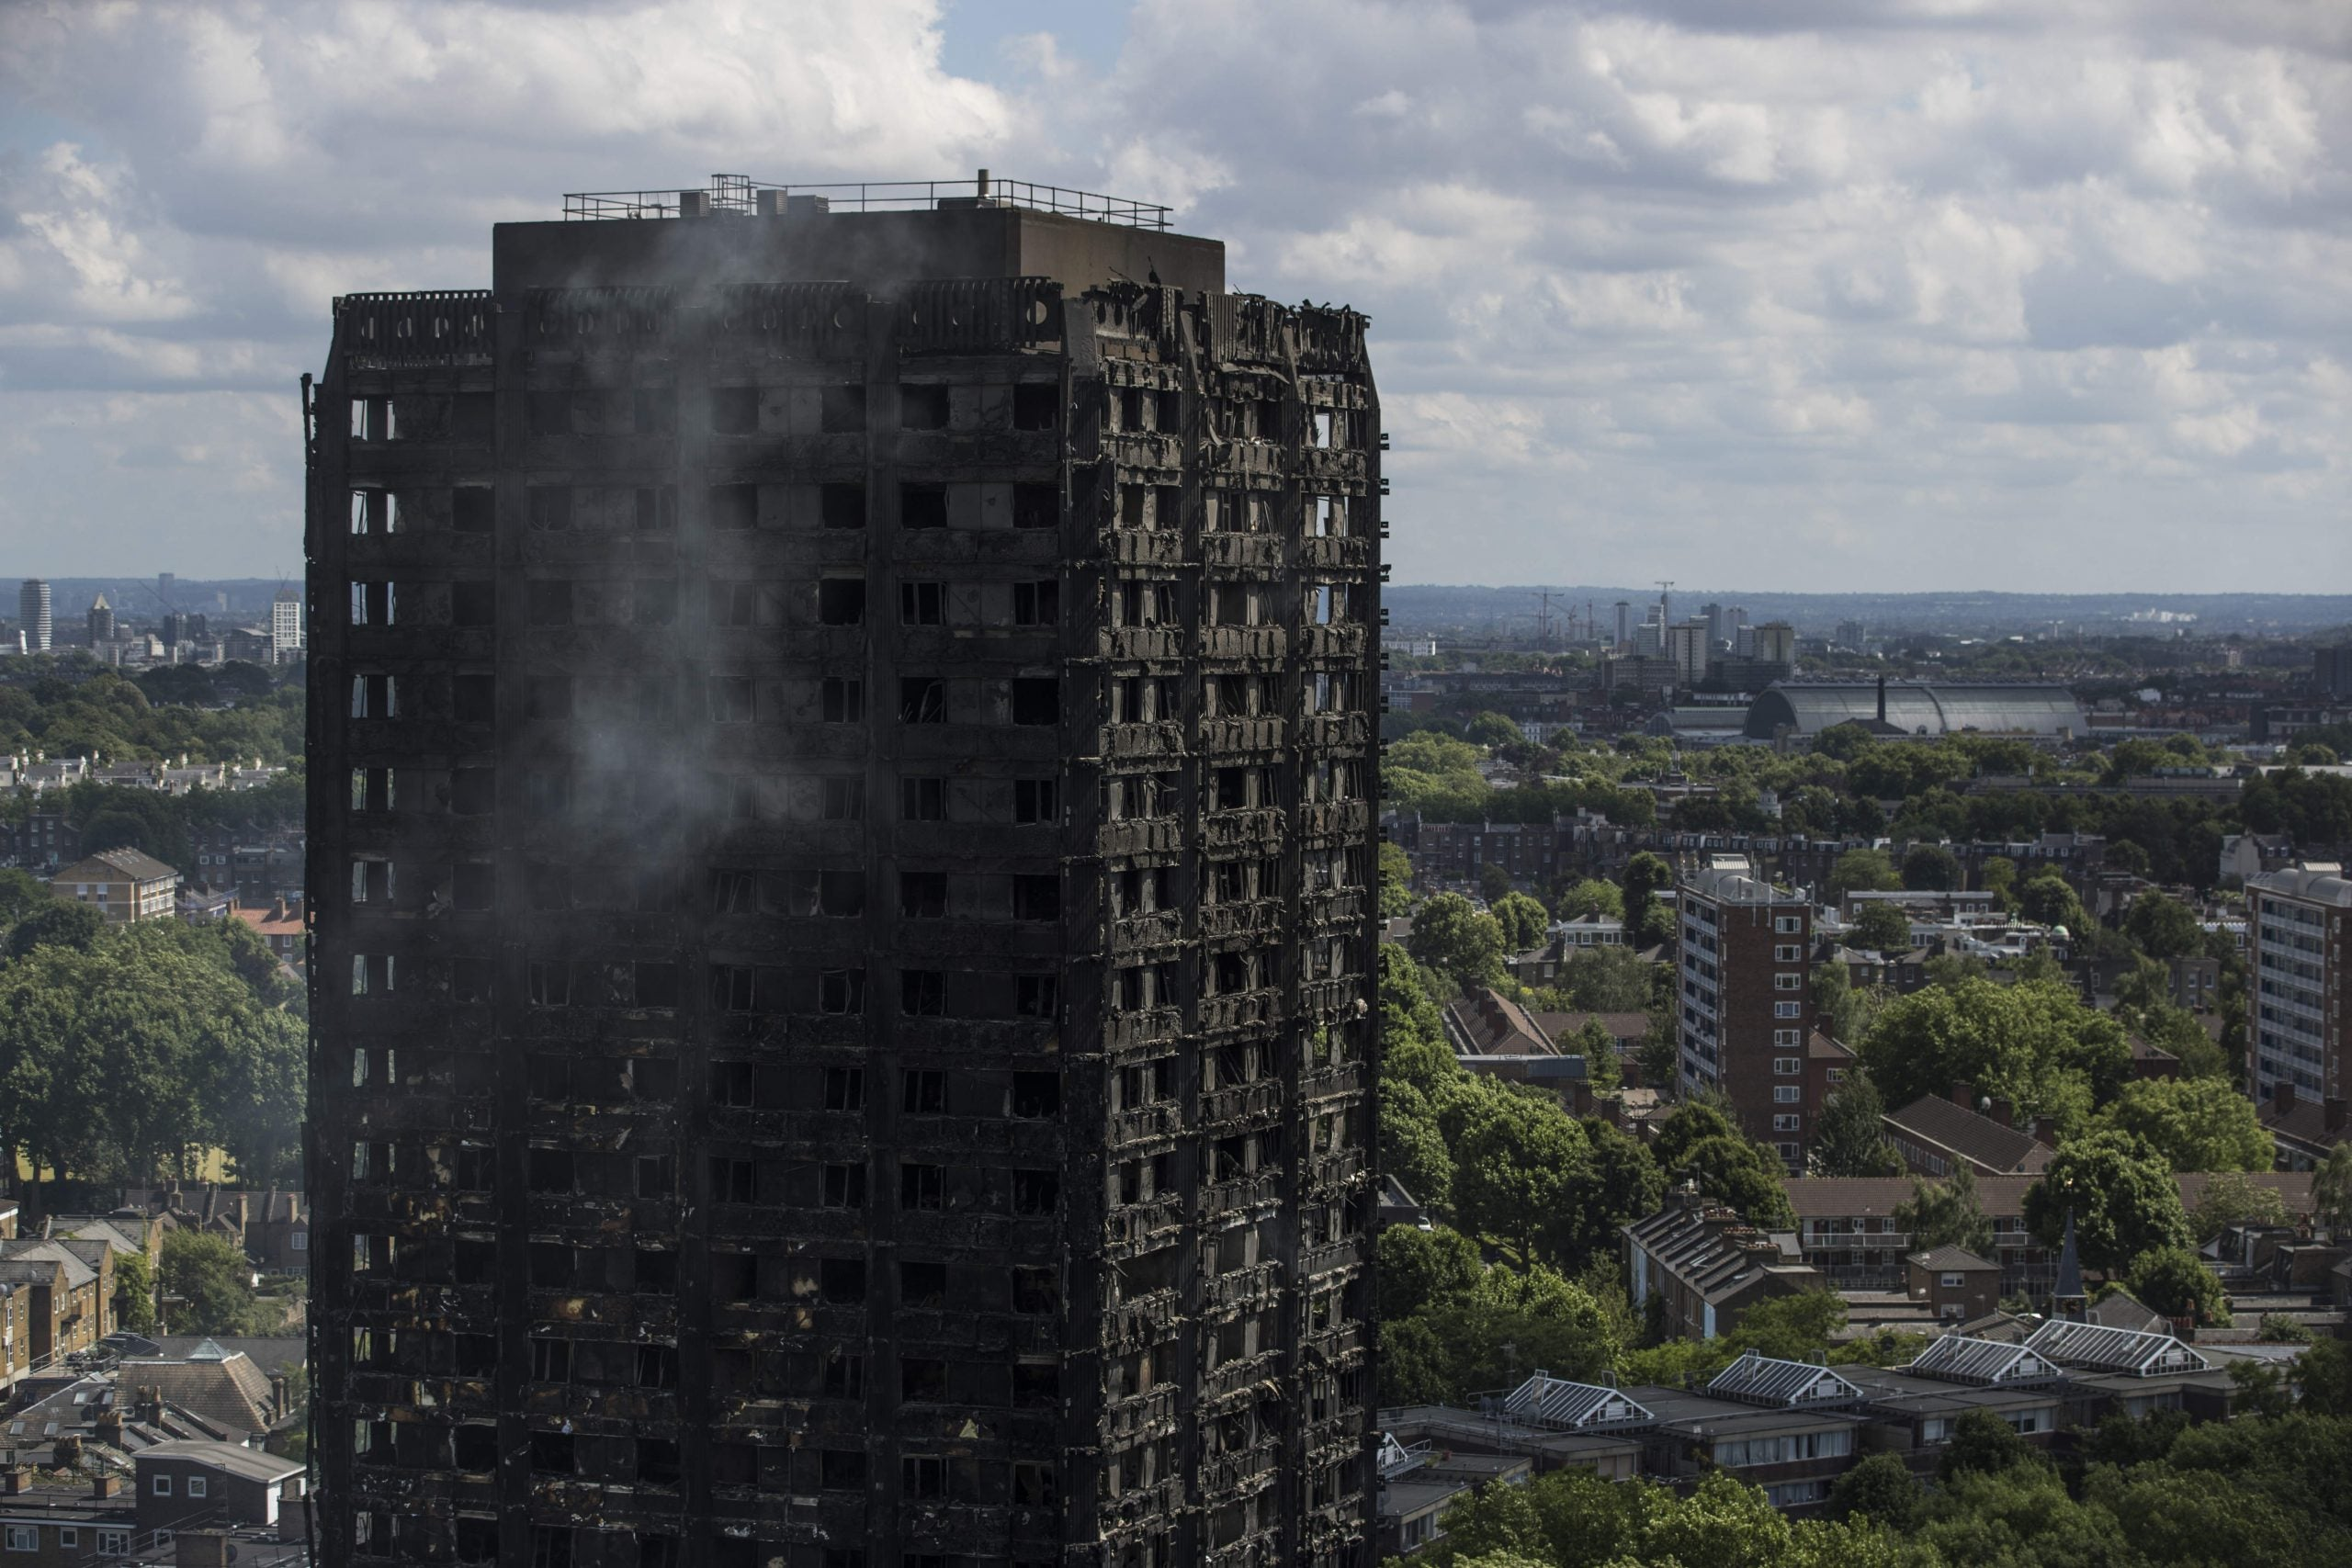 Why we must politicise the tragedy of Grenfell Tower